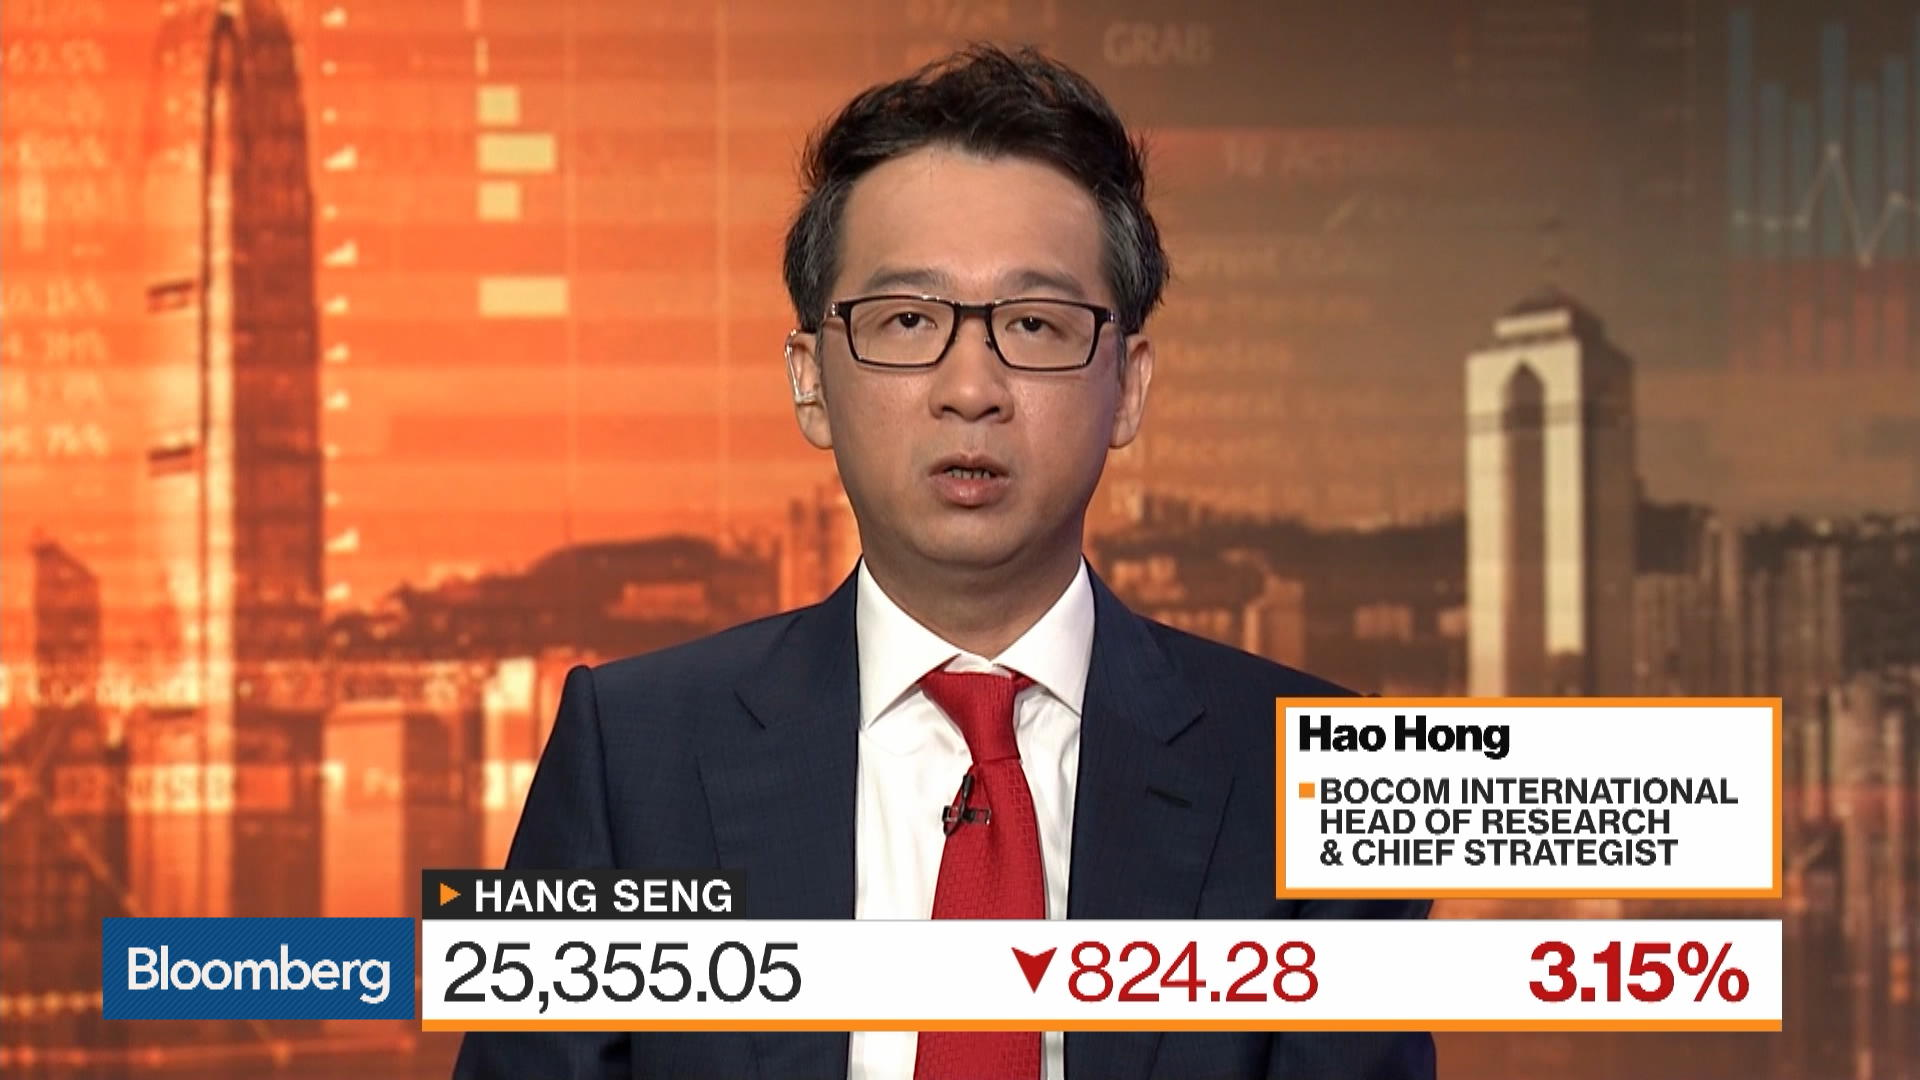 Bocom International Head of Research and Chief Strategist Hao Hong on Hong Kong Markets